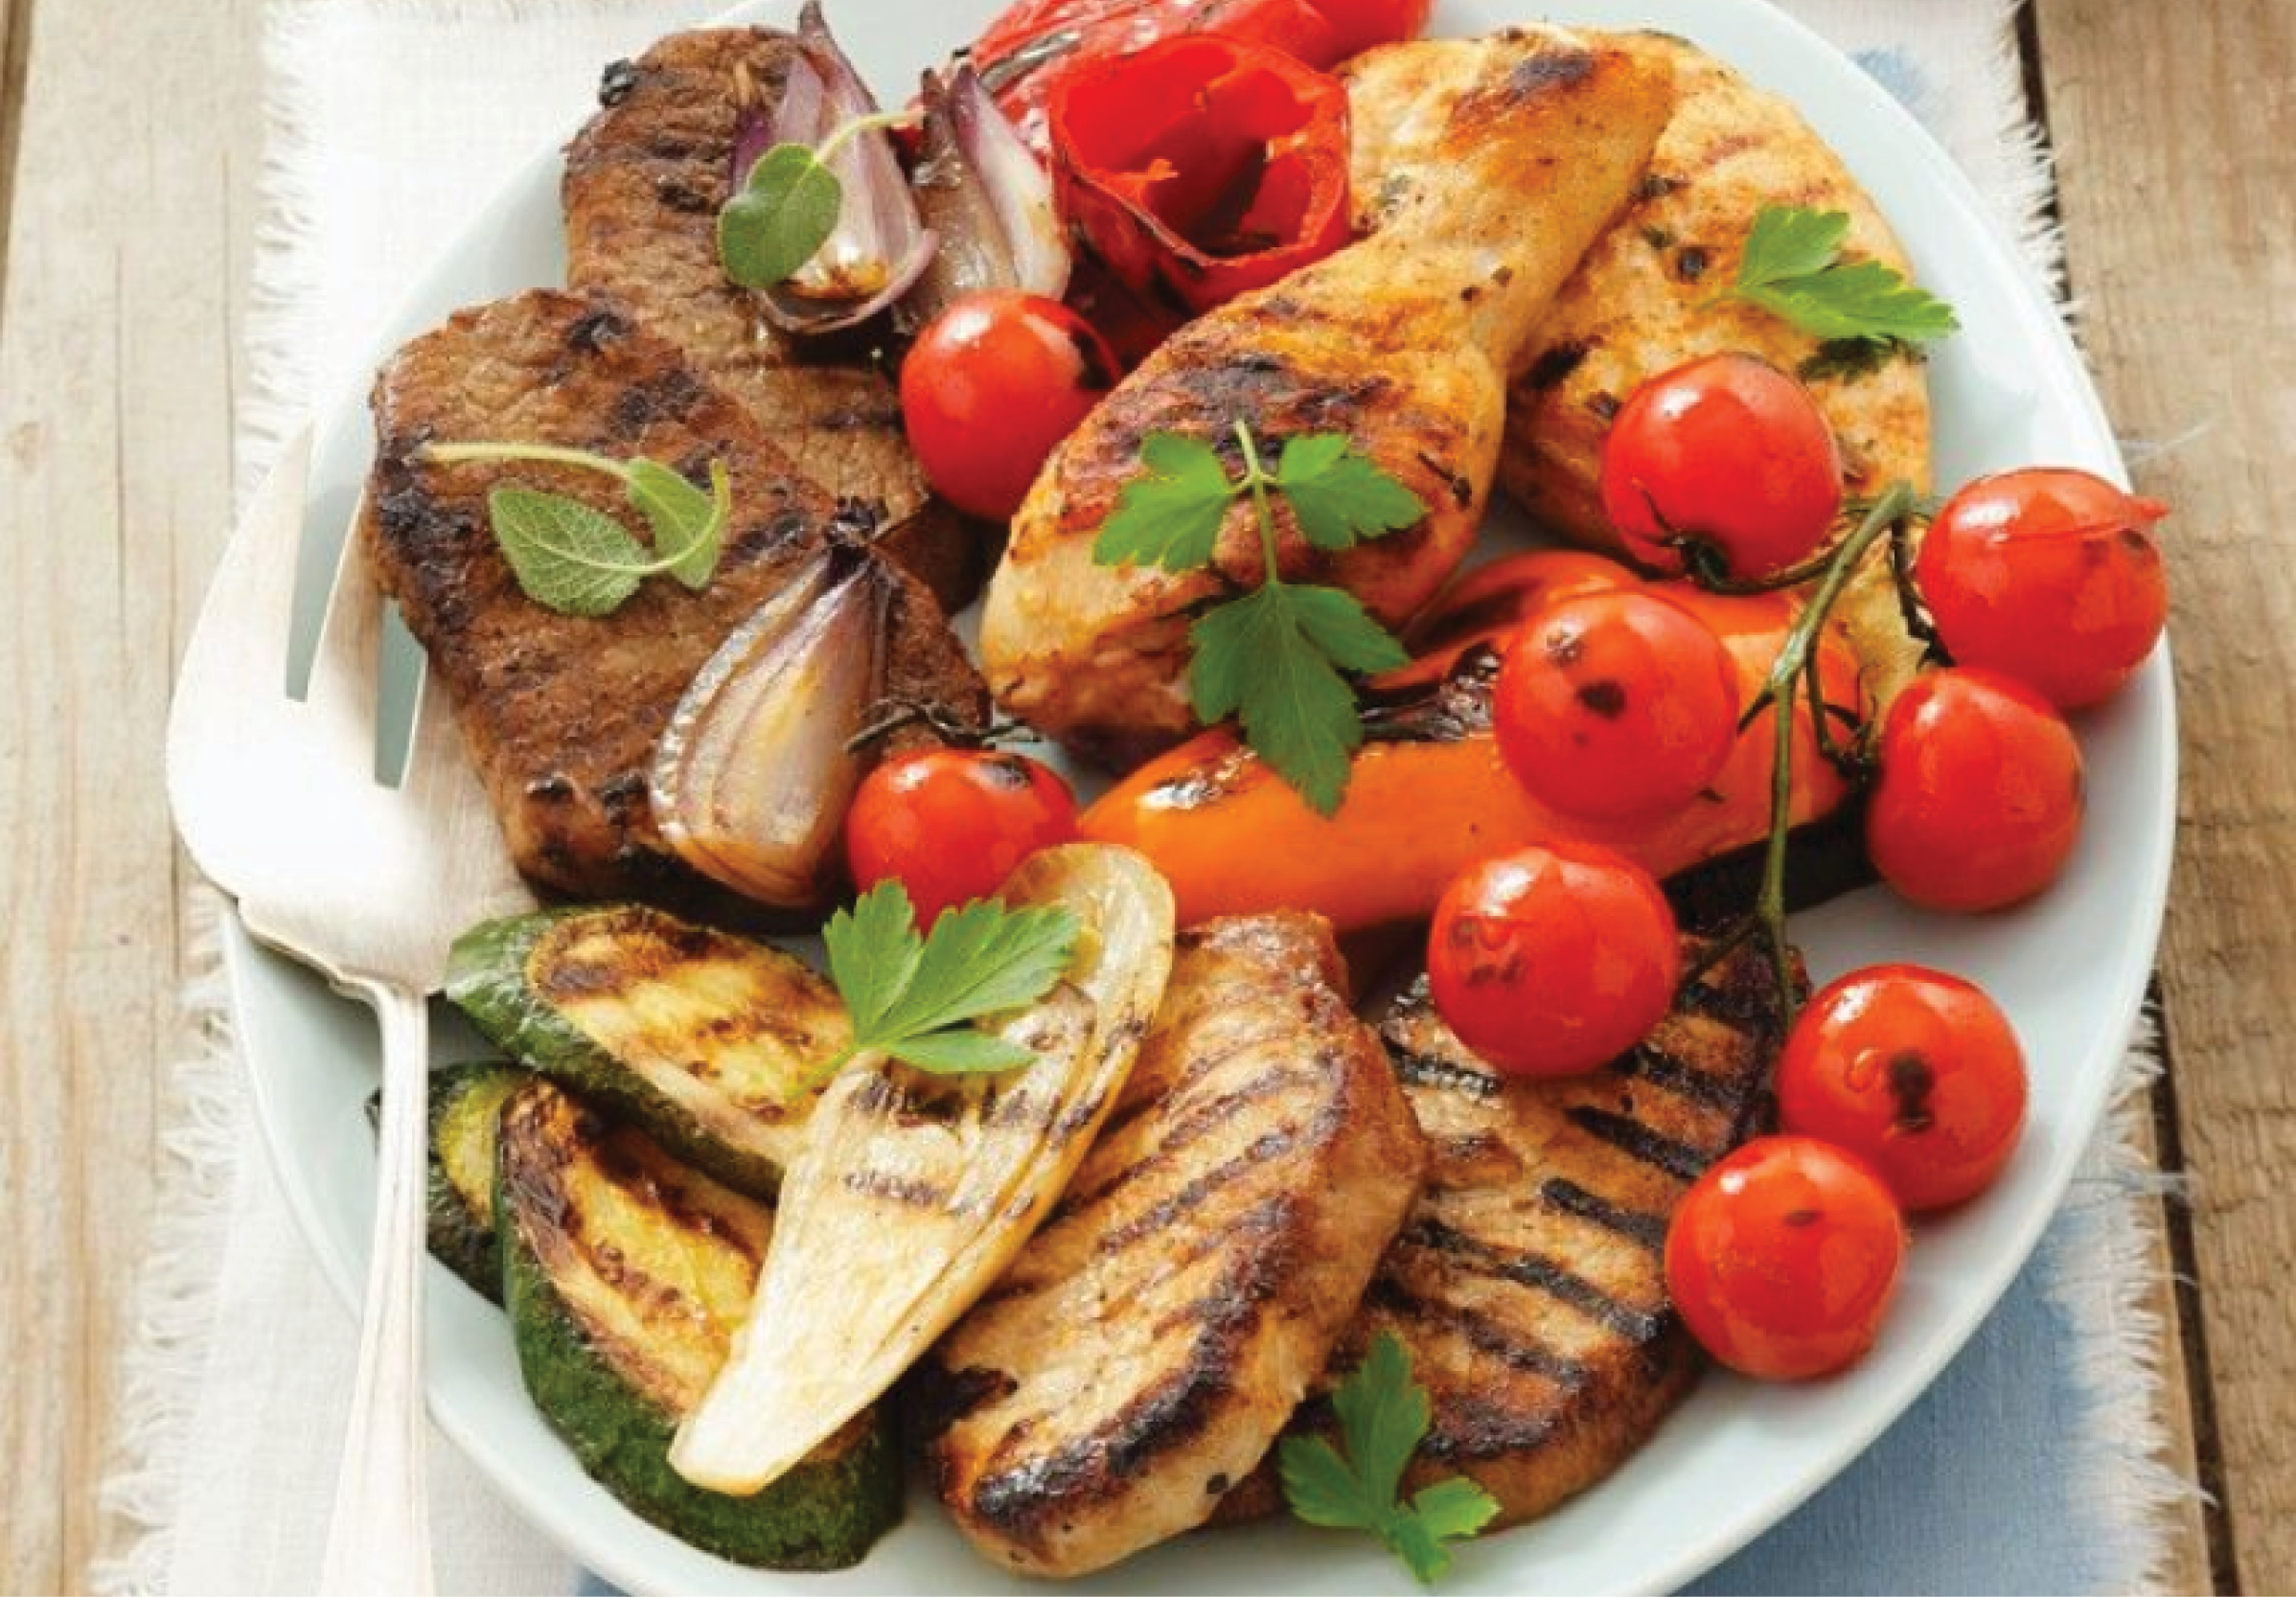 https://eatsmarter.com/recipes/mixed-meat-and-vegetable-grill-plate